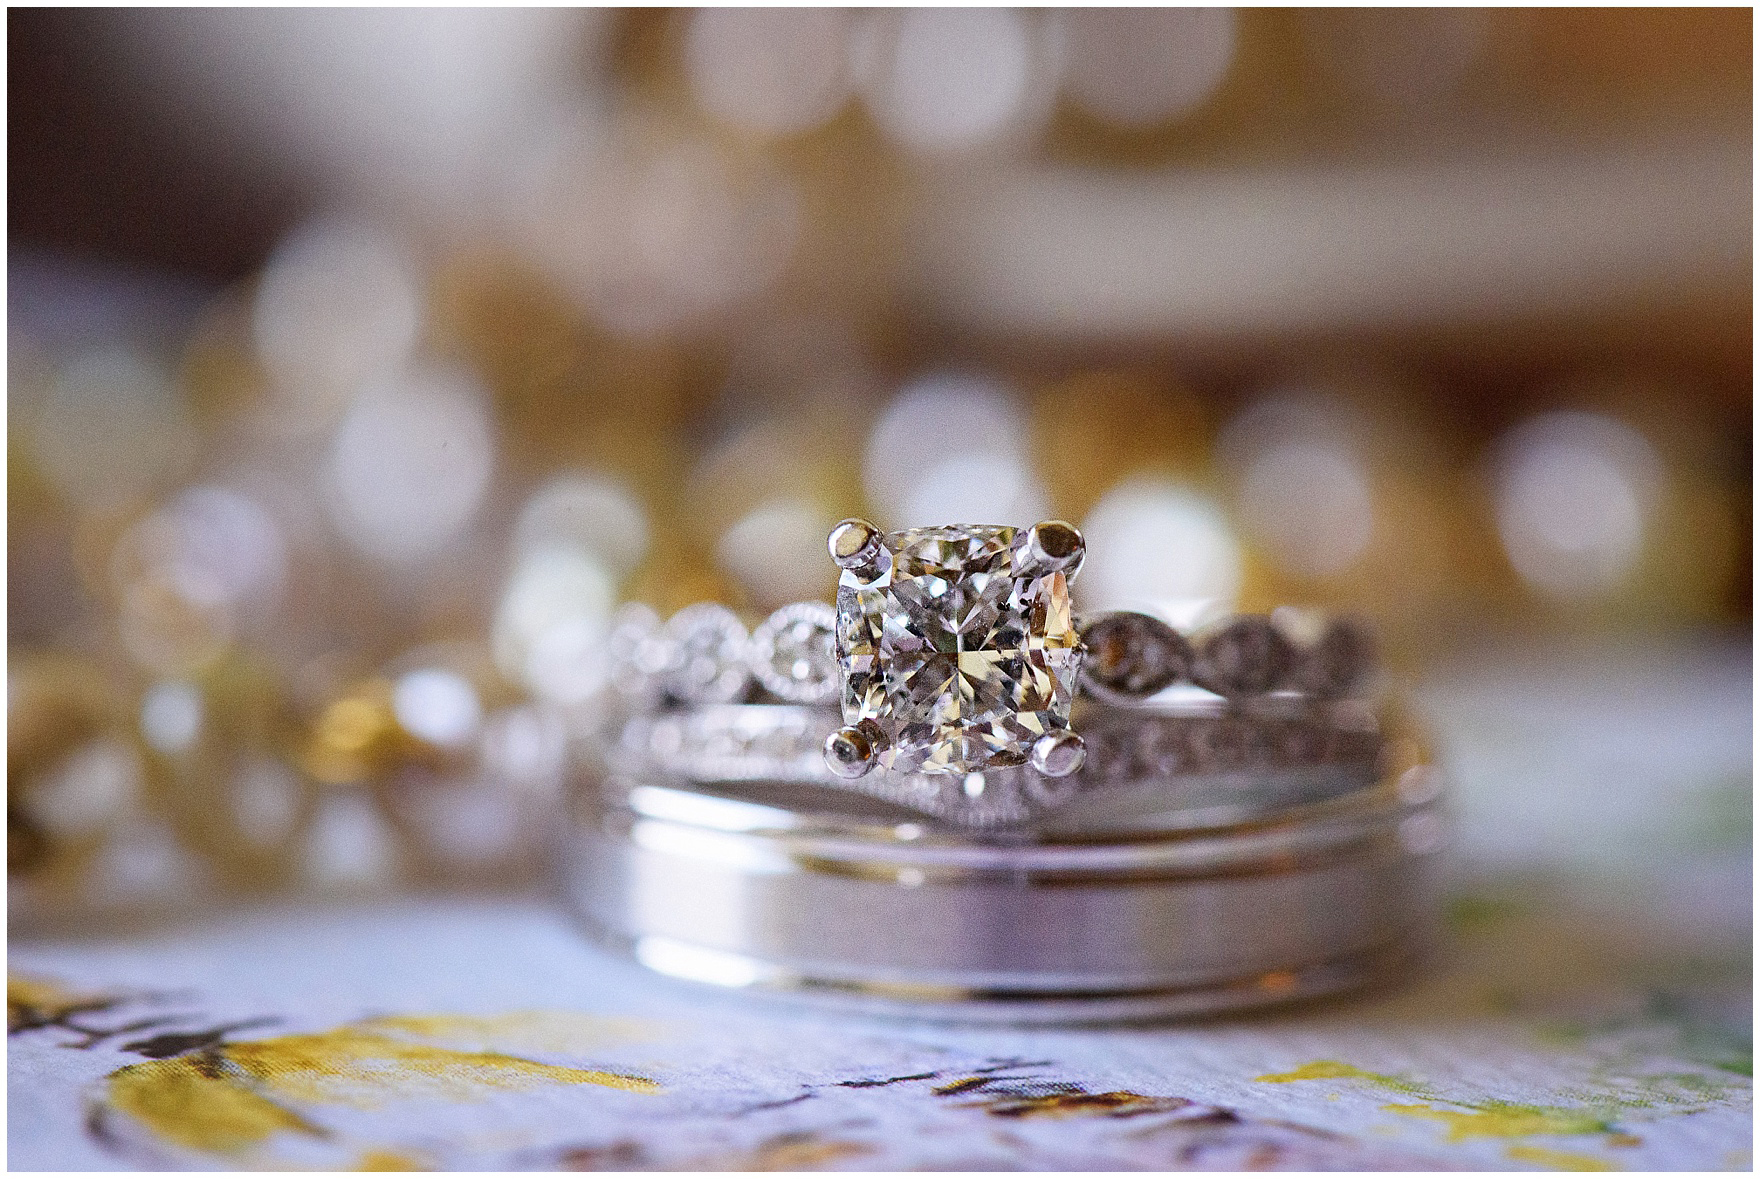 Detail shot of an engagement ring with wedding bands for a University of Notre Dame wedding.